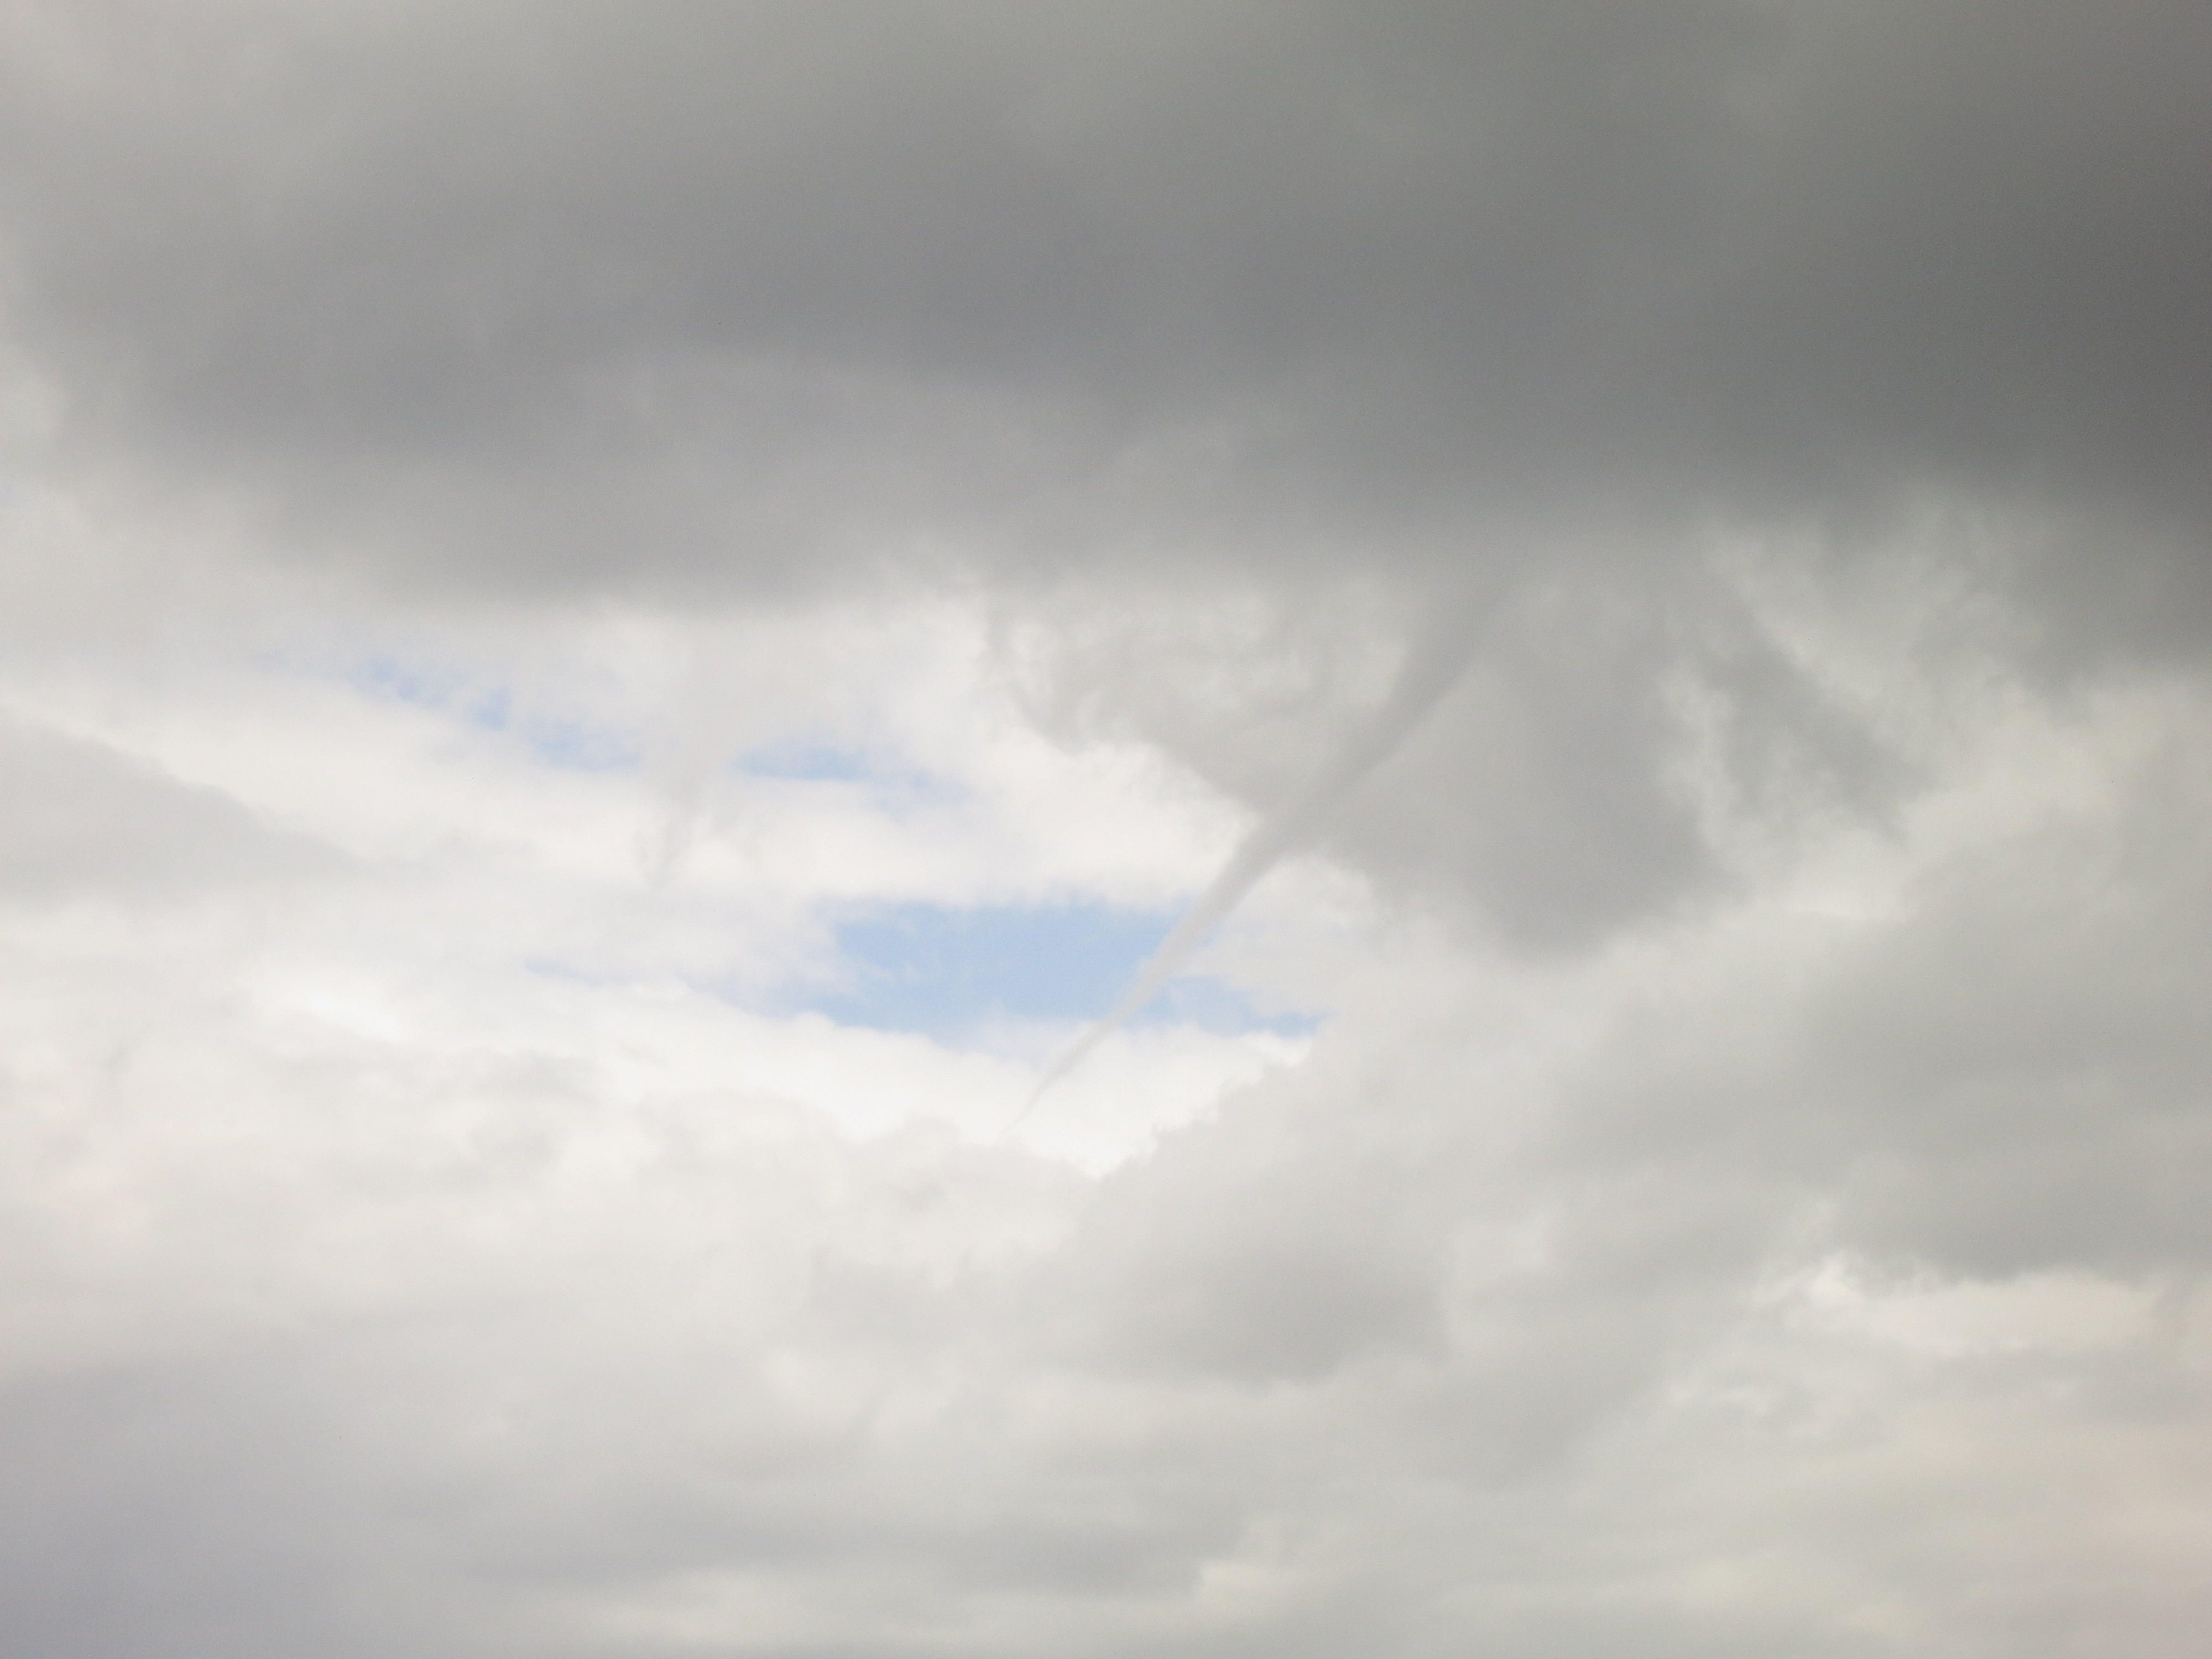 Another funnel cloud fox 12 weather blog for Another word for air